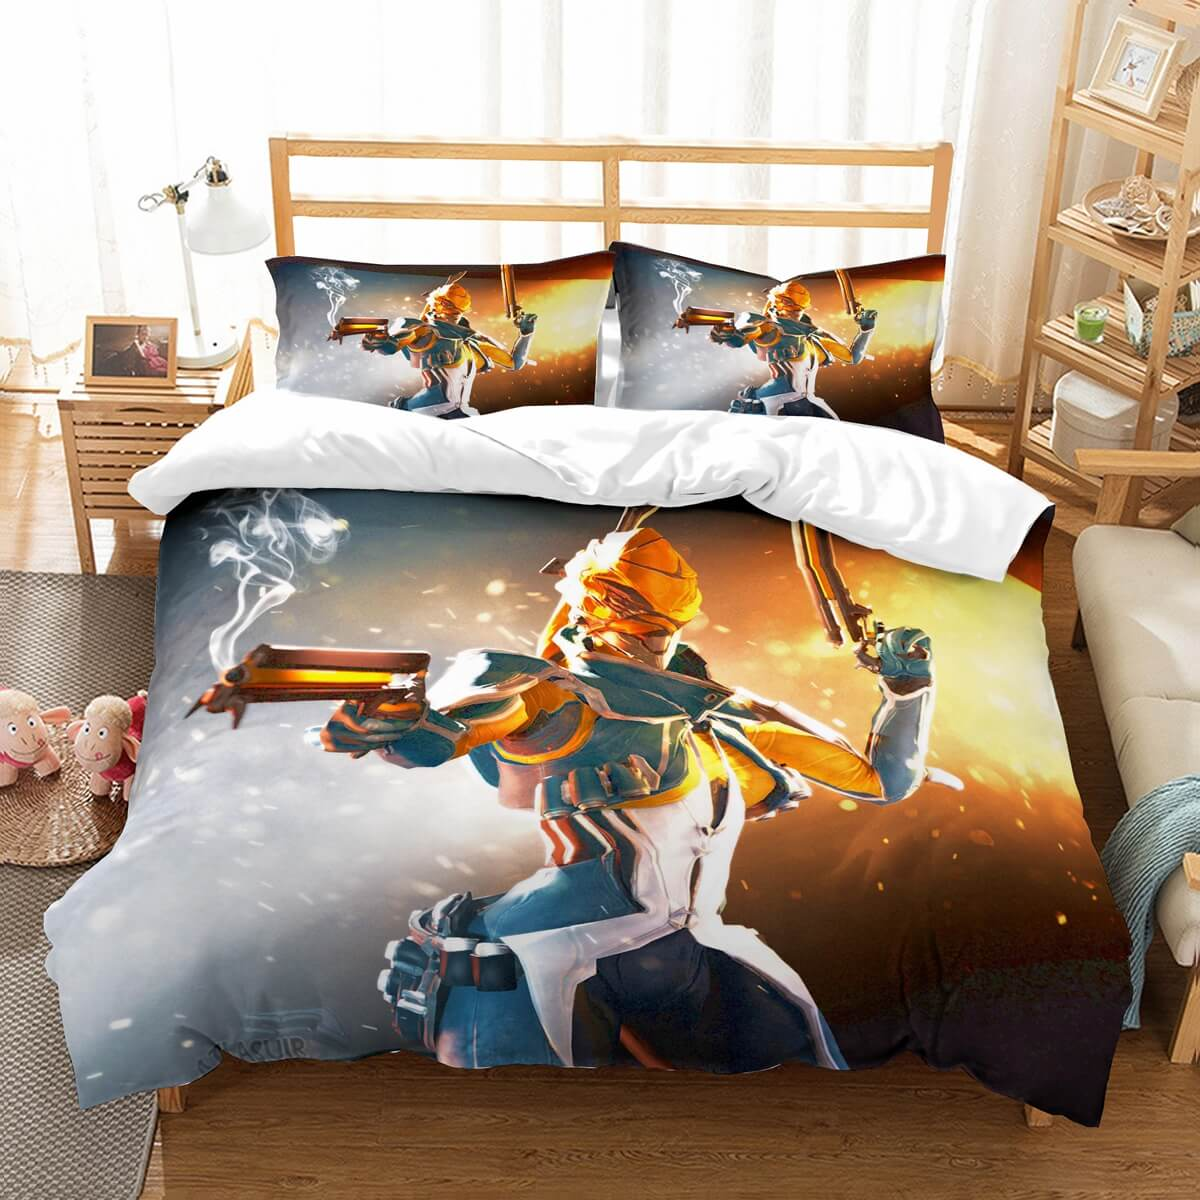 3D Customize Warframe Bedding Set Duvet Cover Set Bedroom Set Bedlinen